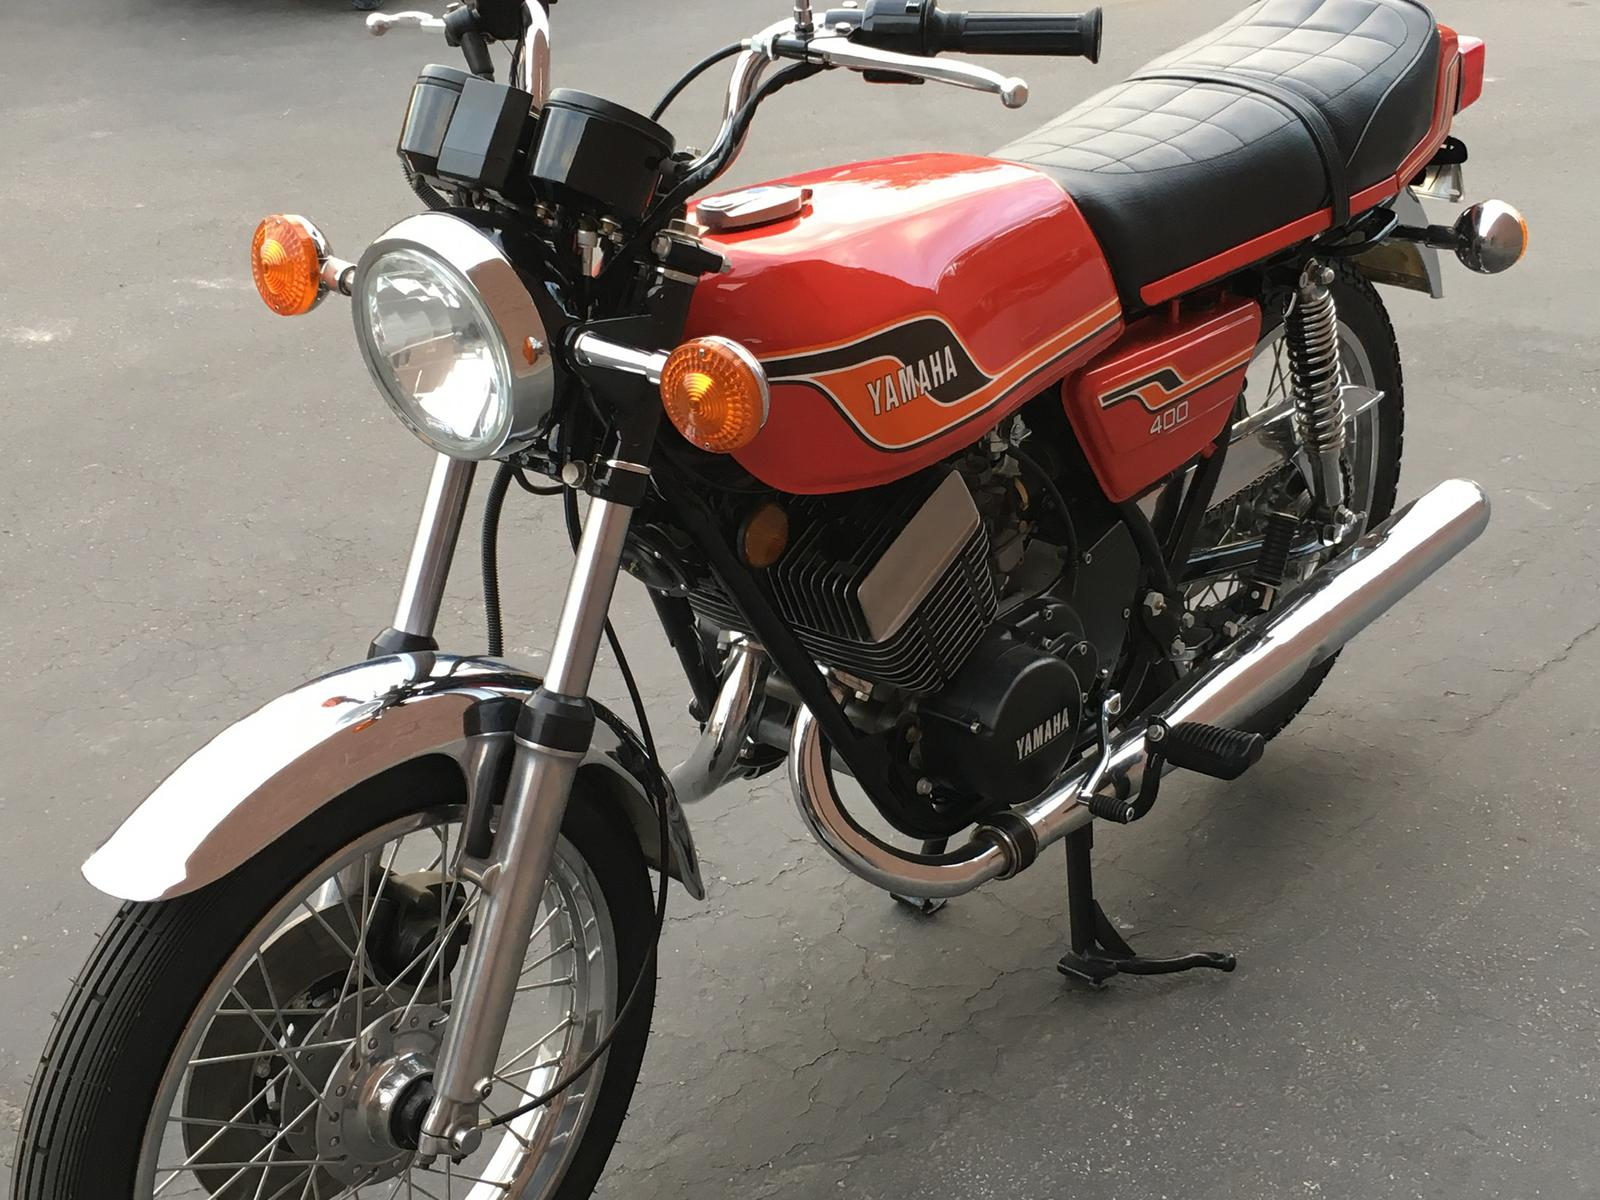 1976 Yamaha RD 400 for sale in Las Vegas, NV  Freedom Euro Cycle